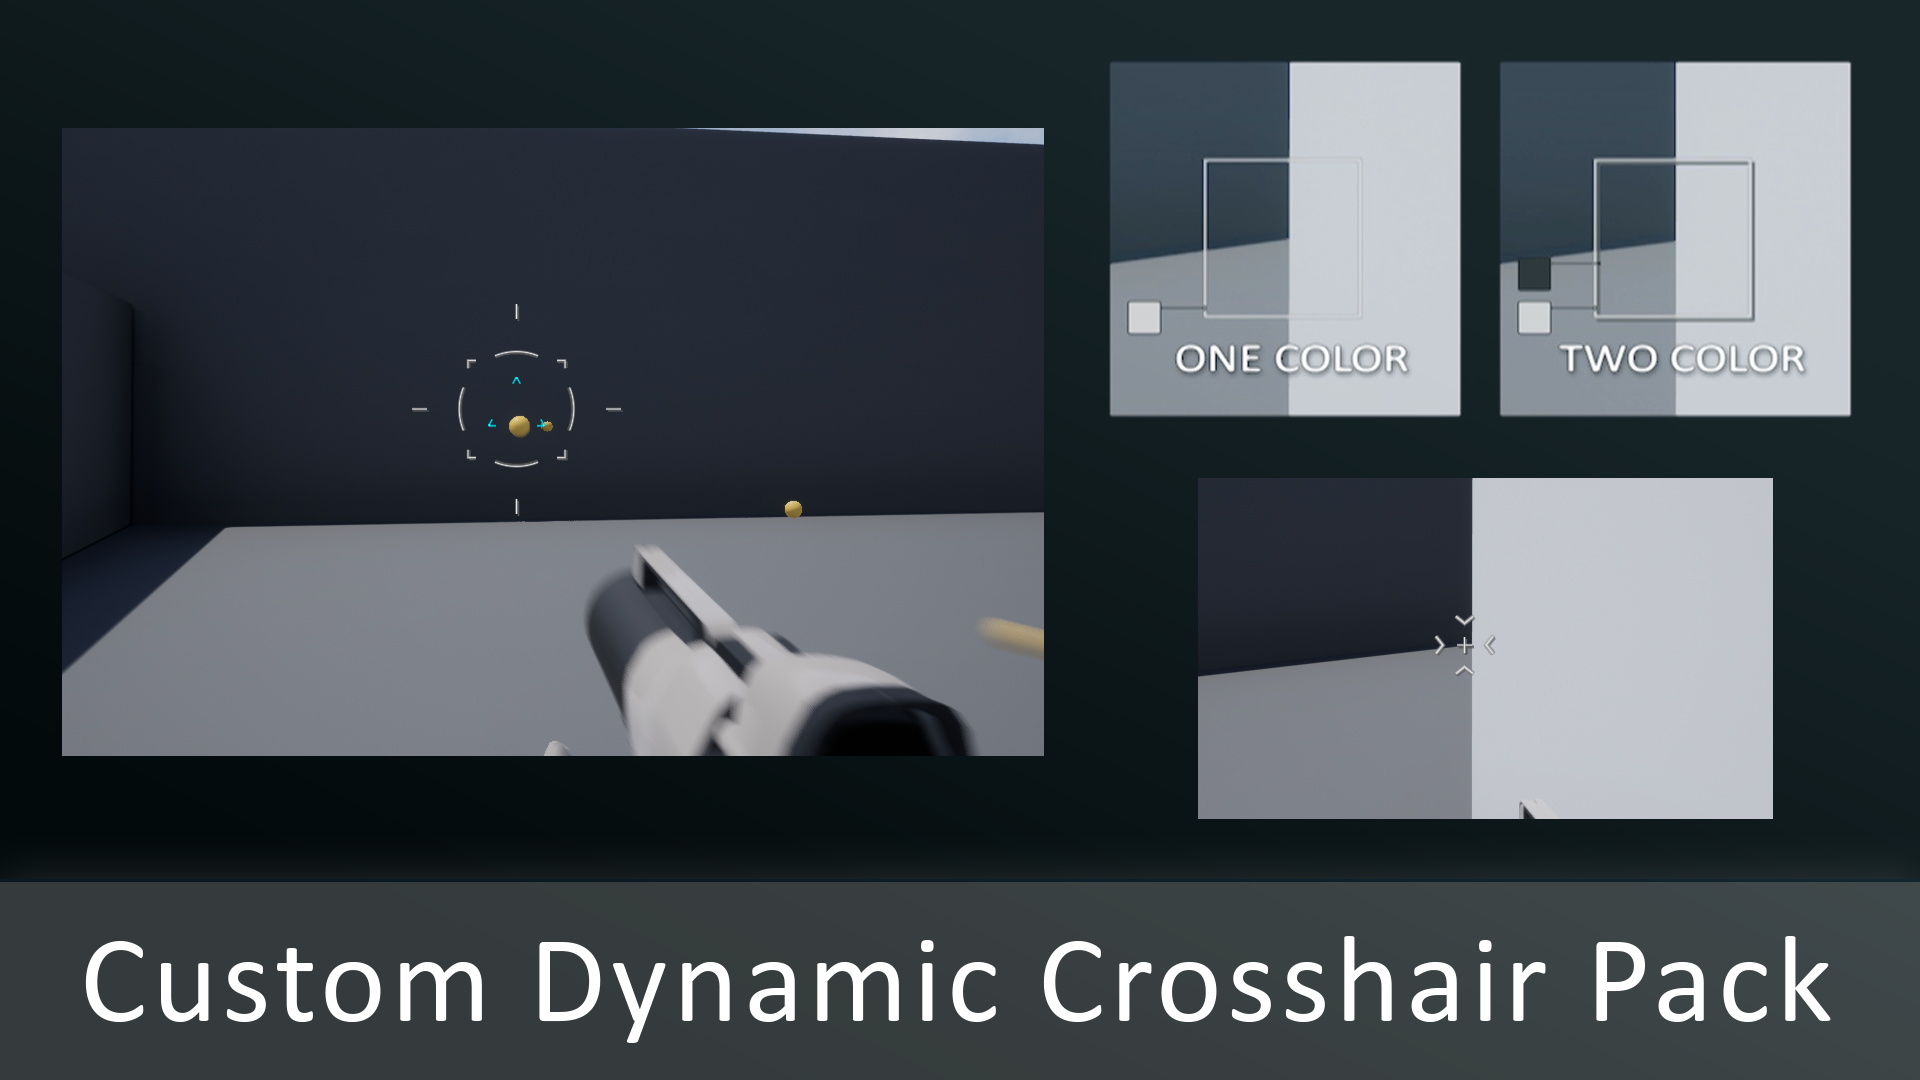 Custom Dynamic Crosshair Pack by IUMTEC in Materials - UE4 Marketplace